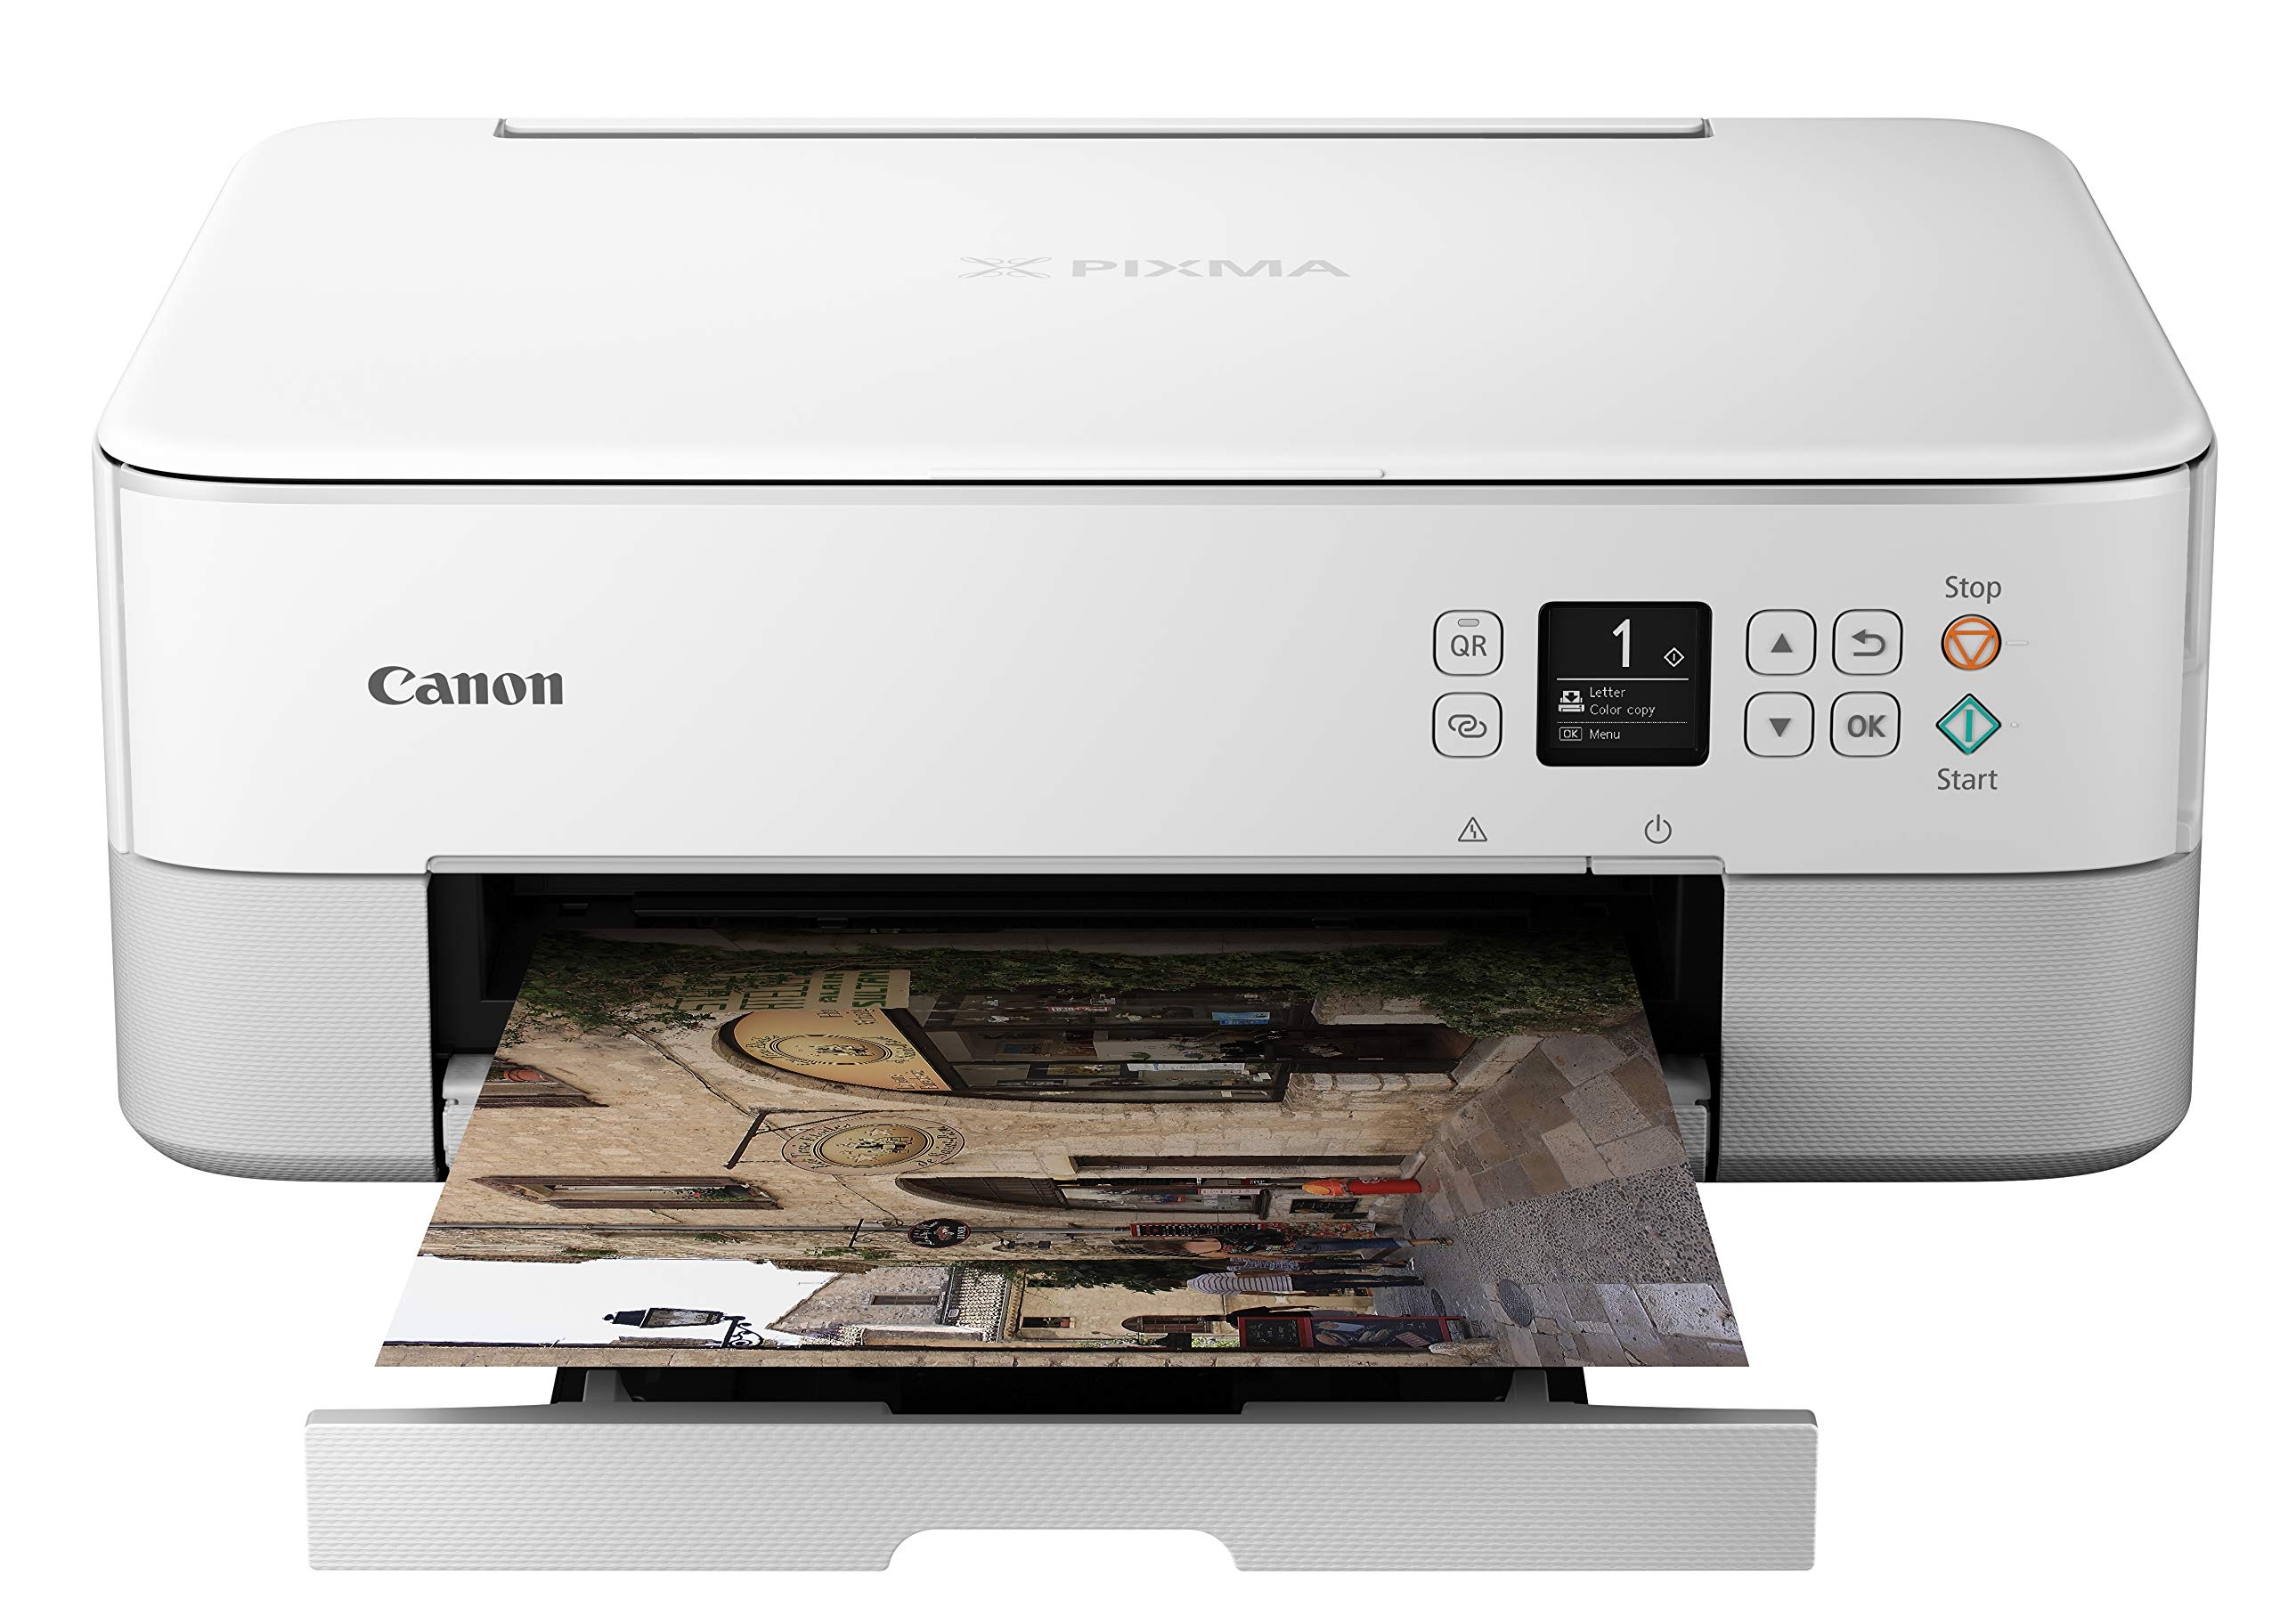 Canon Pixma TS5320 Wireless All In One Printer, Scanner, Copier with AirPrint, White by Canon